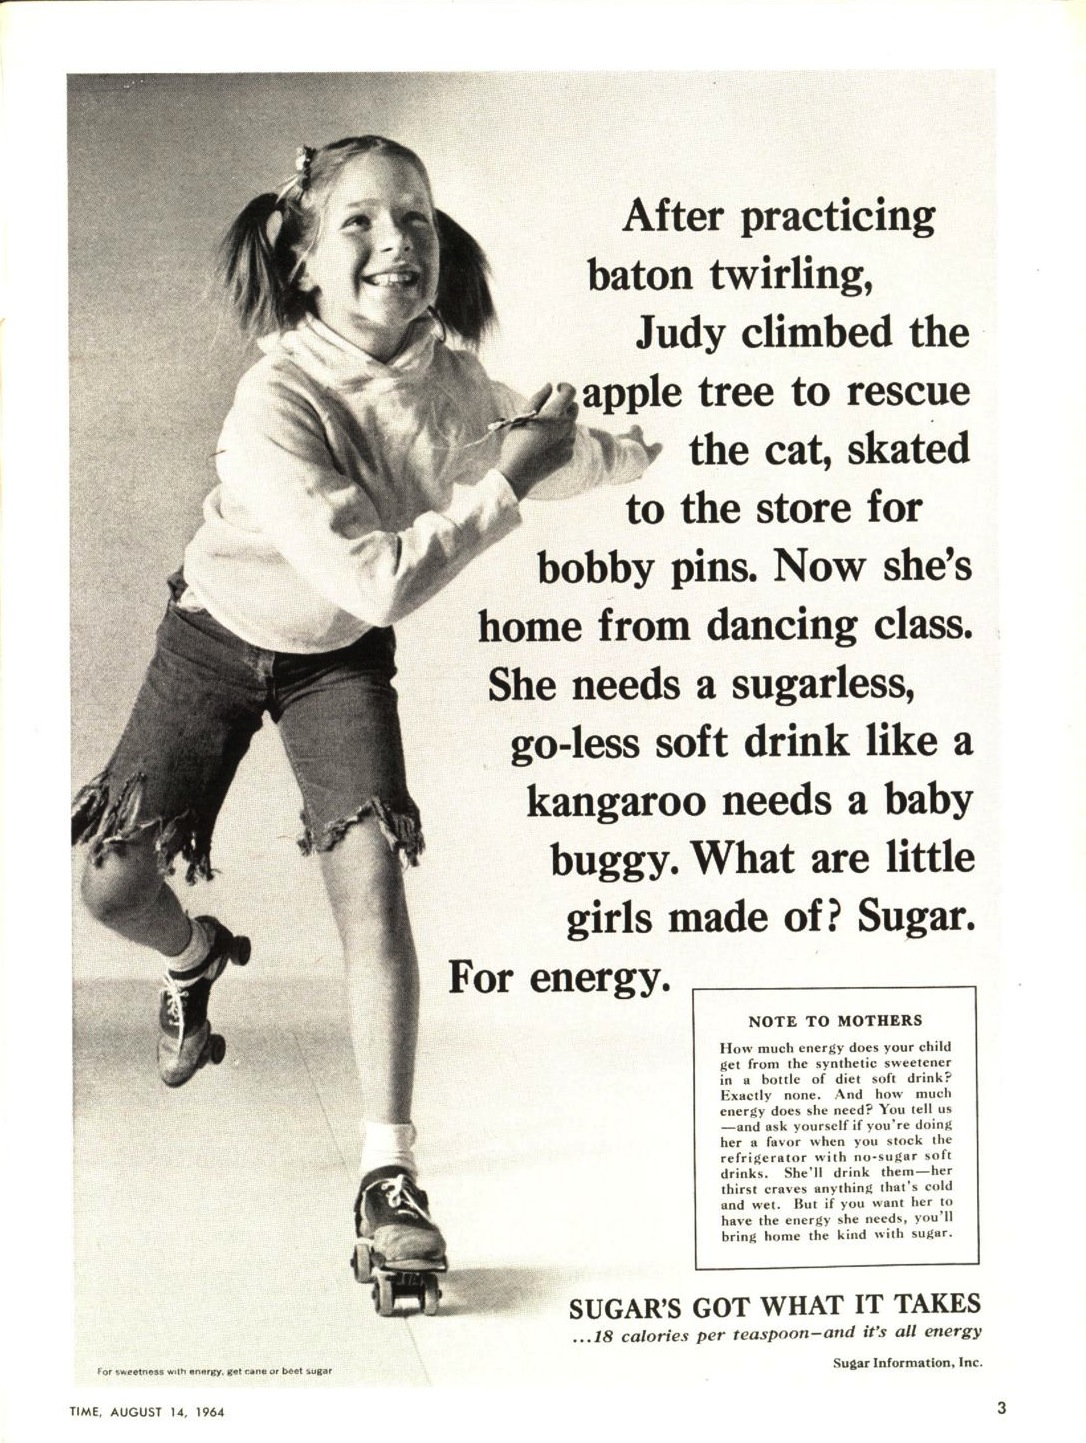 A pro-sugar ad that appeared in the Aug. 14, 1964, issue of TIMEIn a  note to mothers,  the ad explains that no-sugar drinks could not provide children with the energy they need.